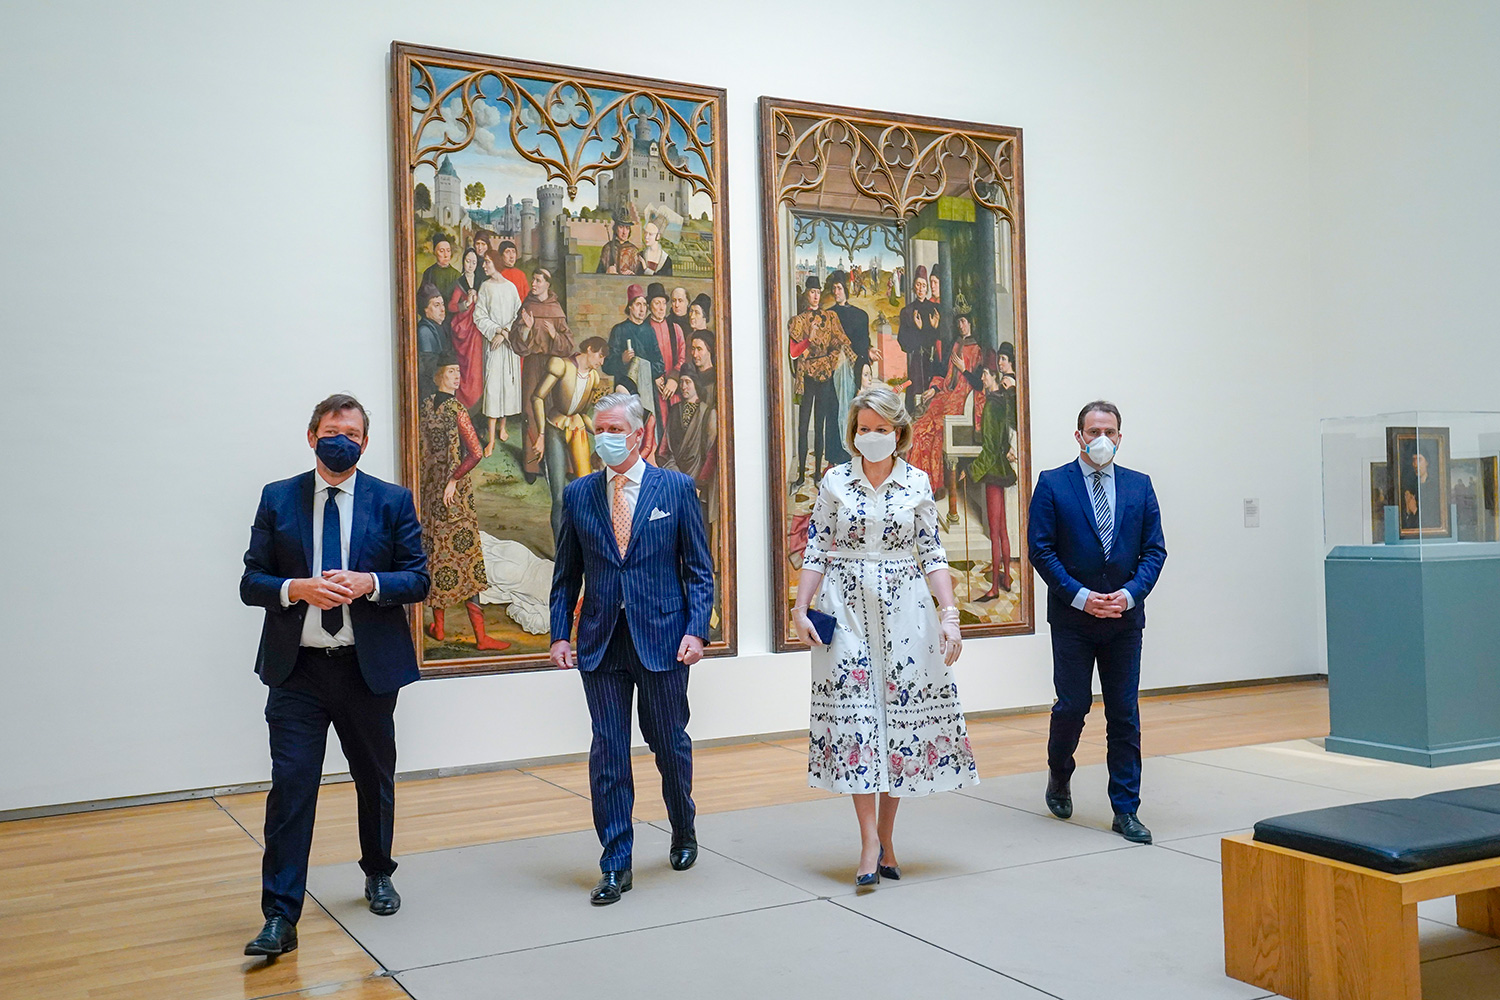 Their Majesties the King and the Queen visit the Royal Museum of Fine Arts of Belgium